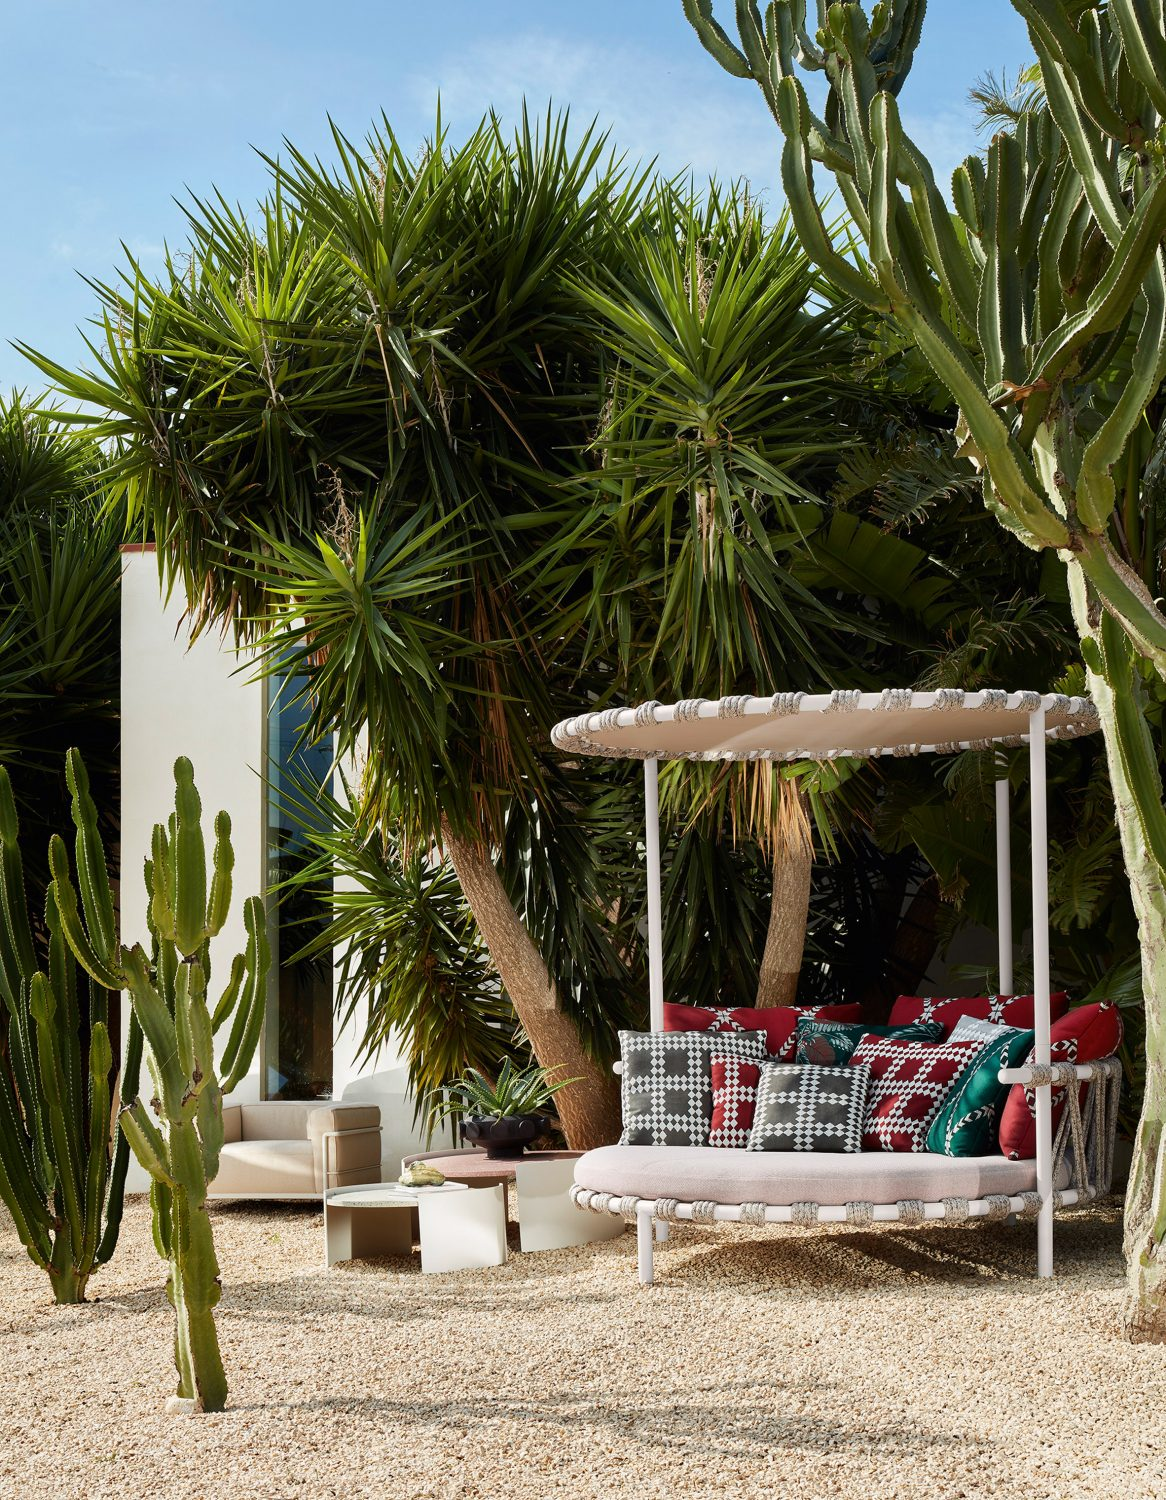 Cassina Unveils Outdoor Furniture Collection cassina Cassina Unveils Outdoor Furniture Collection cassina unveils outdoor furniture collection 3 scaled